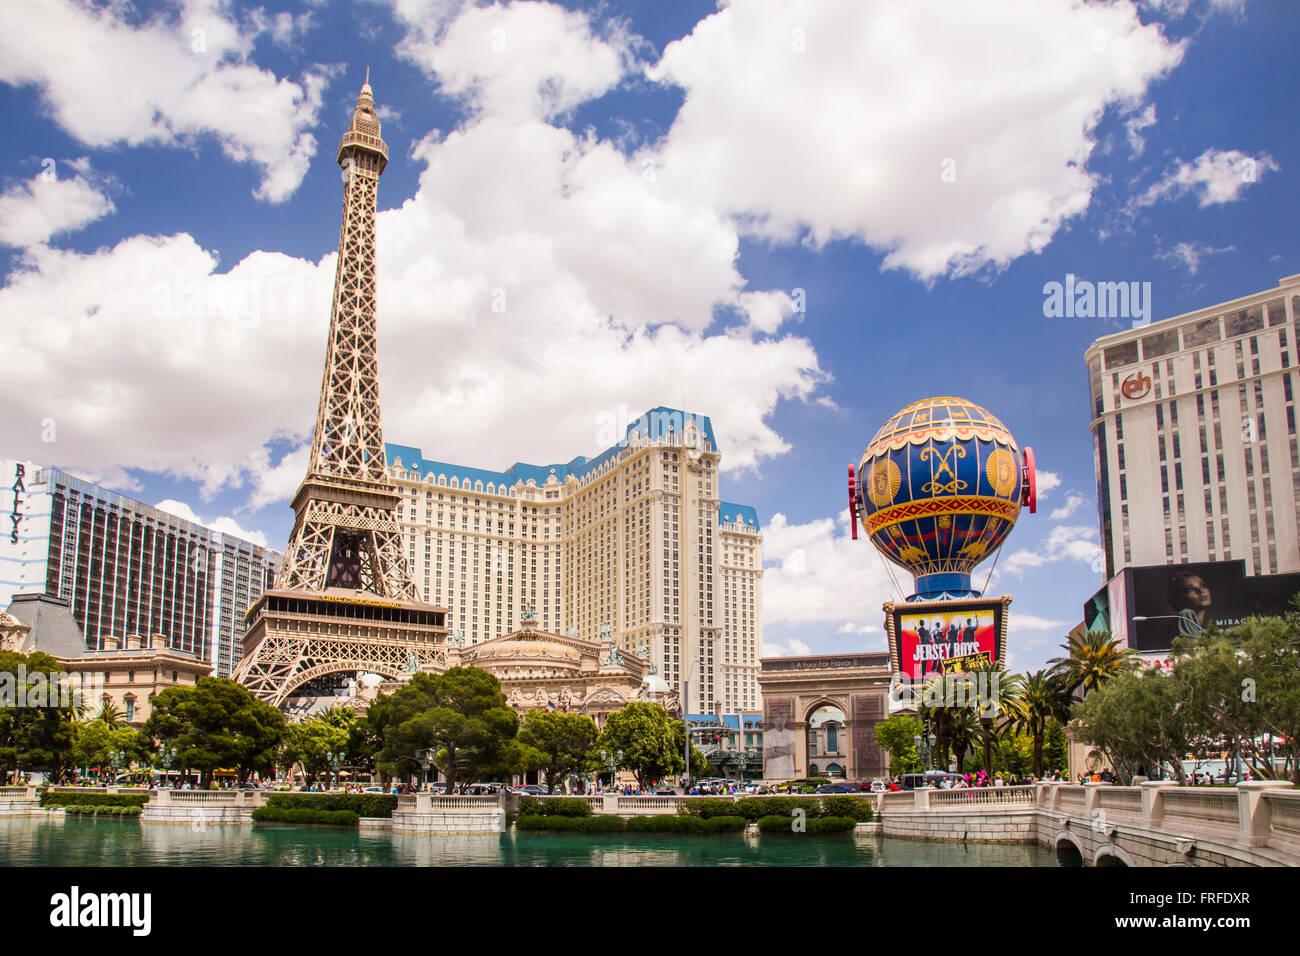 Avis de casinos de villégiature le long de la rue Vegas à Las Vegas au Nevada Photo Stock